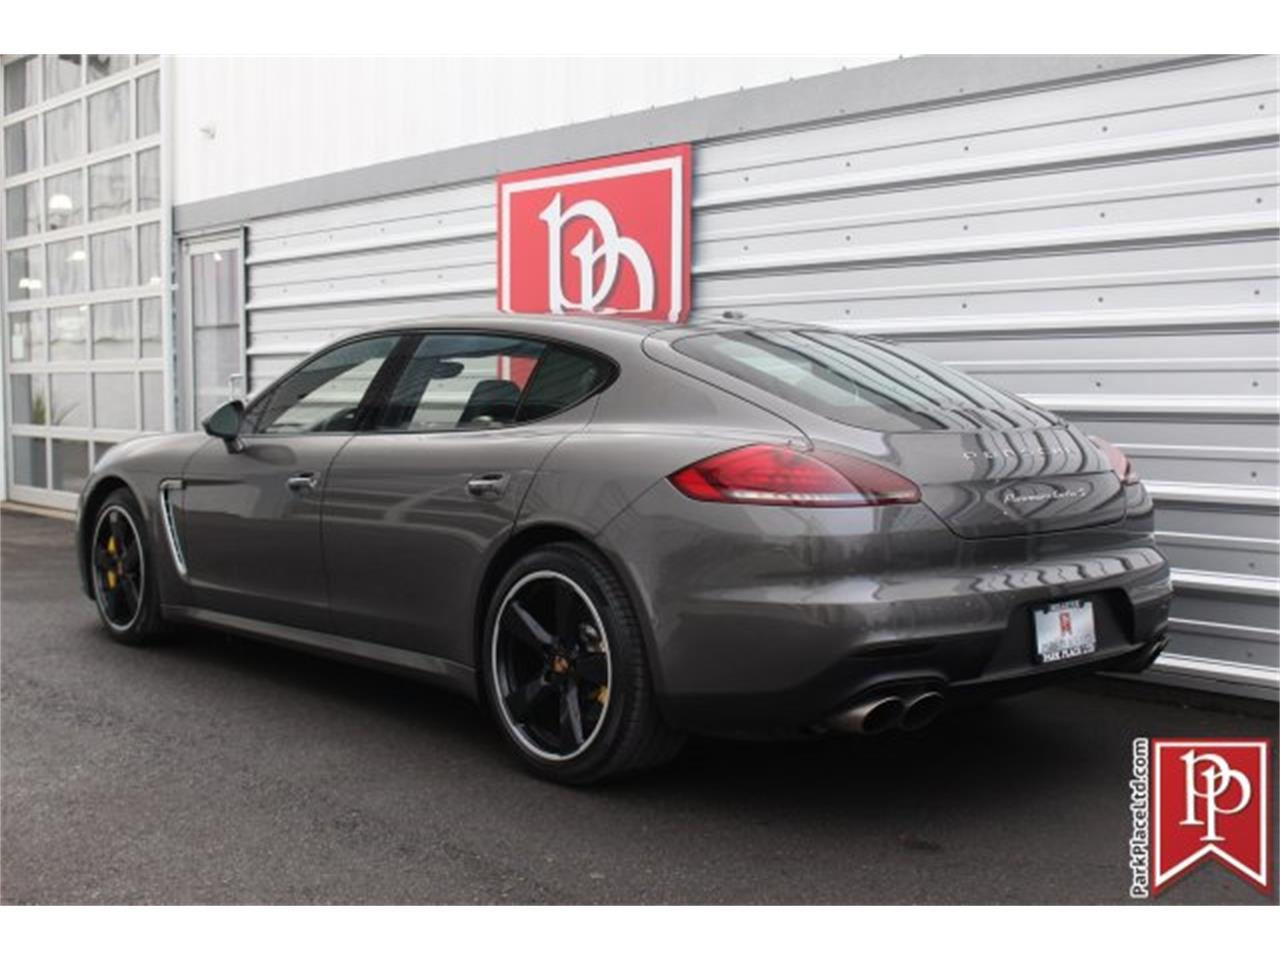 2014 Porsche Panamera for sale in Bellevue, WA – photo 5